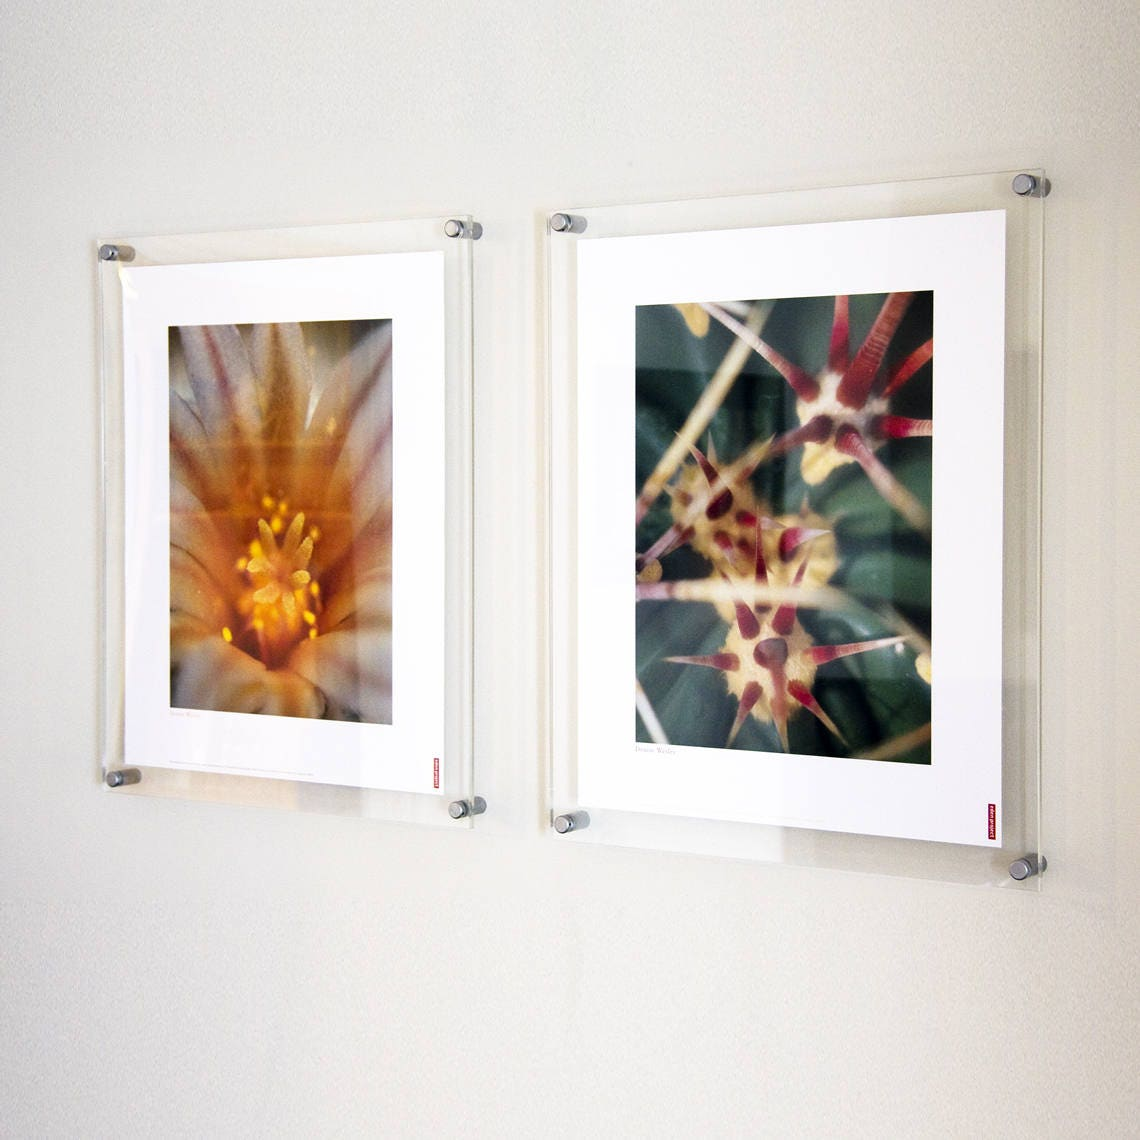 Acrylic Photo Frames  Modern Perspex Wall Mounted Picture Frames  Premium Perspex Acrylic  Manufactured in the UK